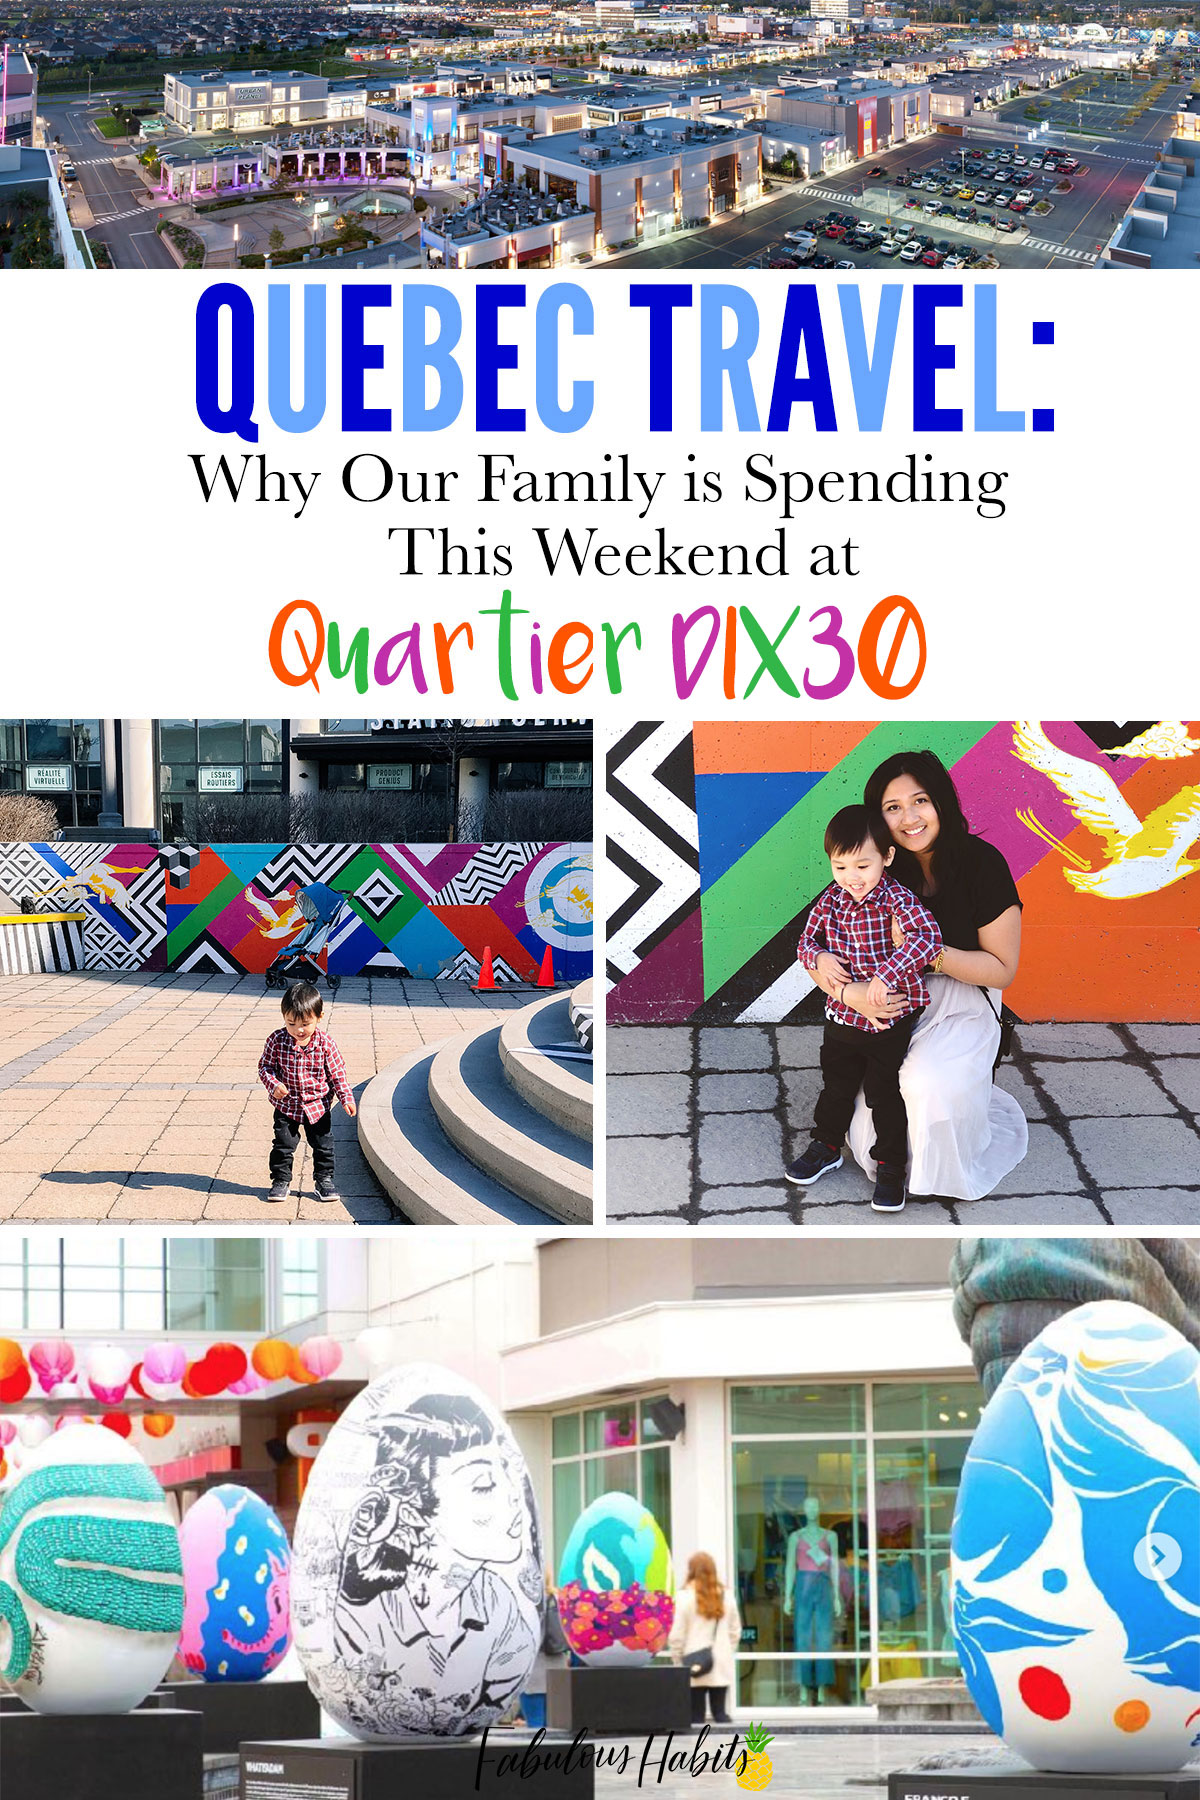 Quartier Dix30 is a large lifestyle/shopping center in the Greater Montreal Area and this is how we spend our weekends there!